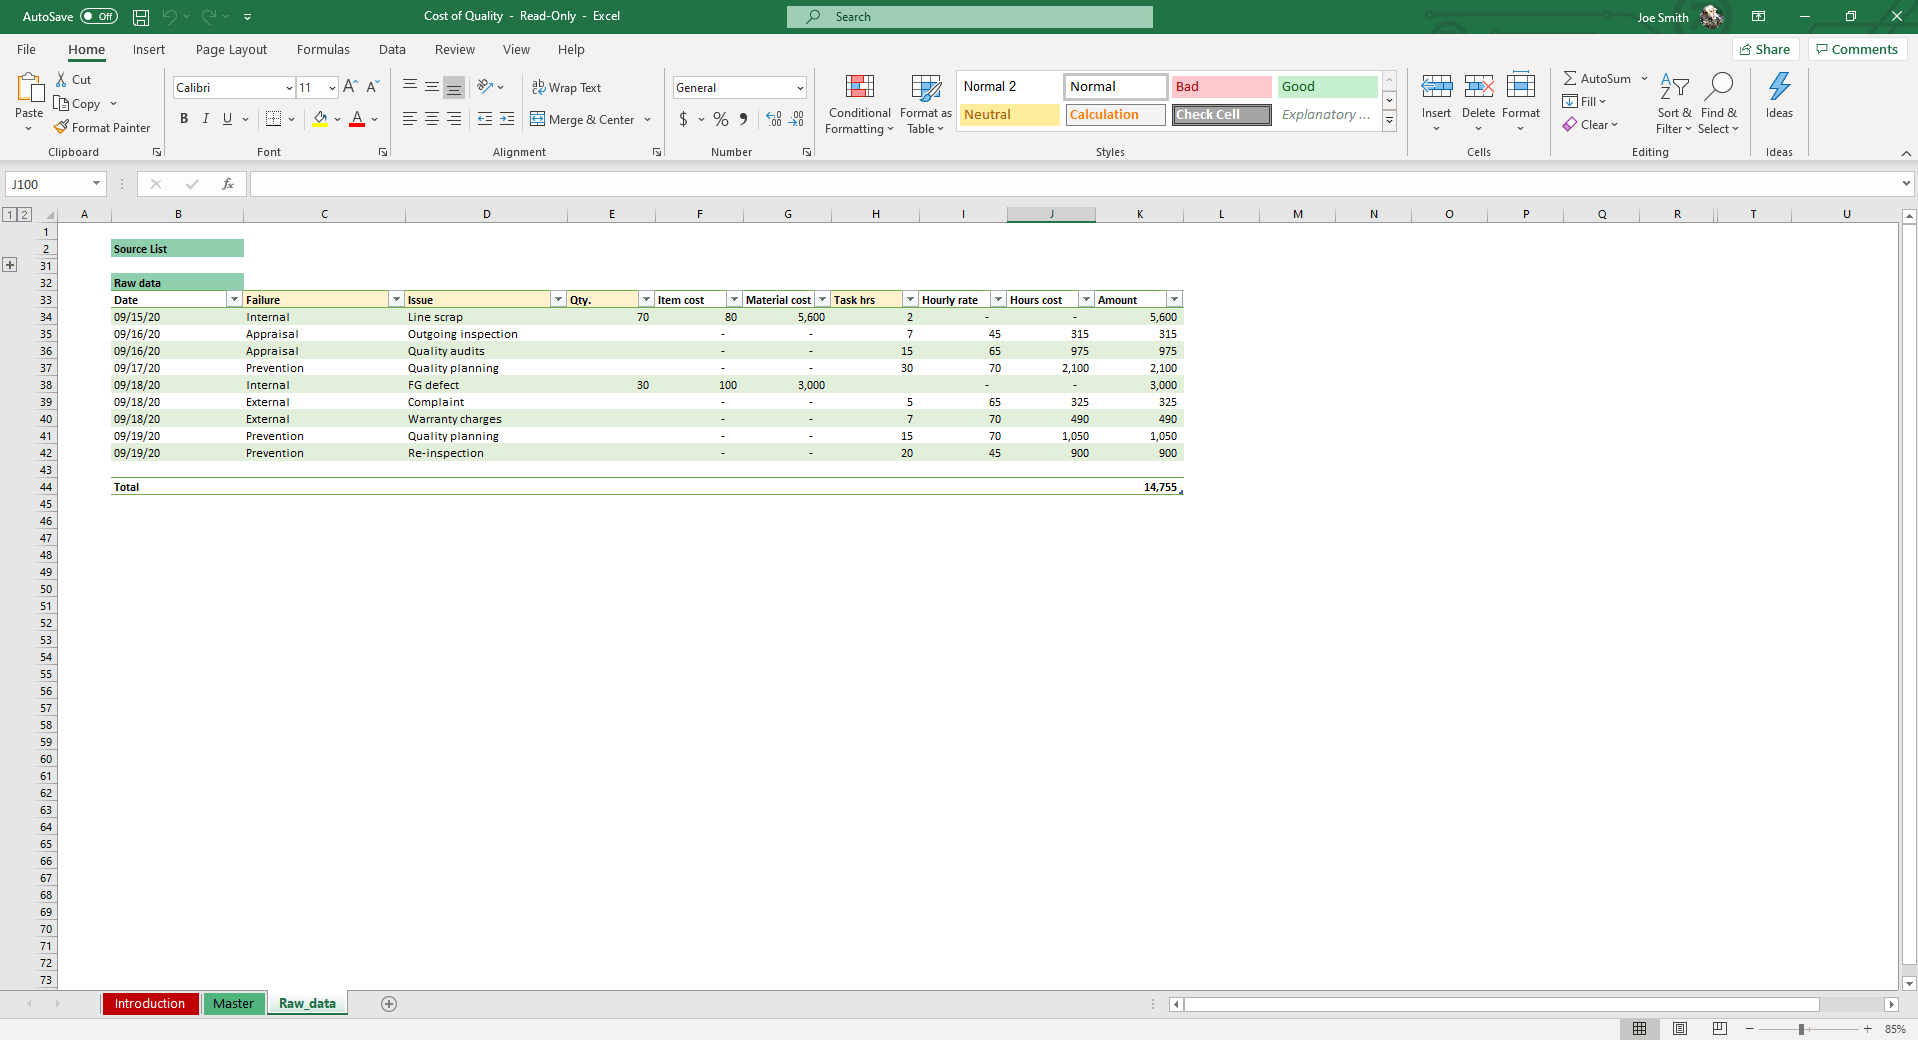 Insert Failures, Issues and production data into the Raw Data sheet.